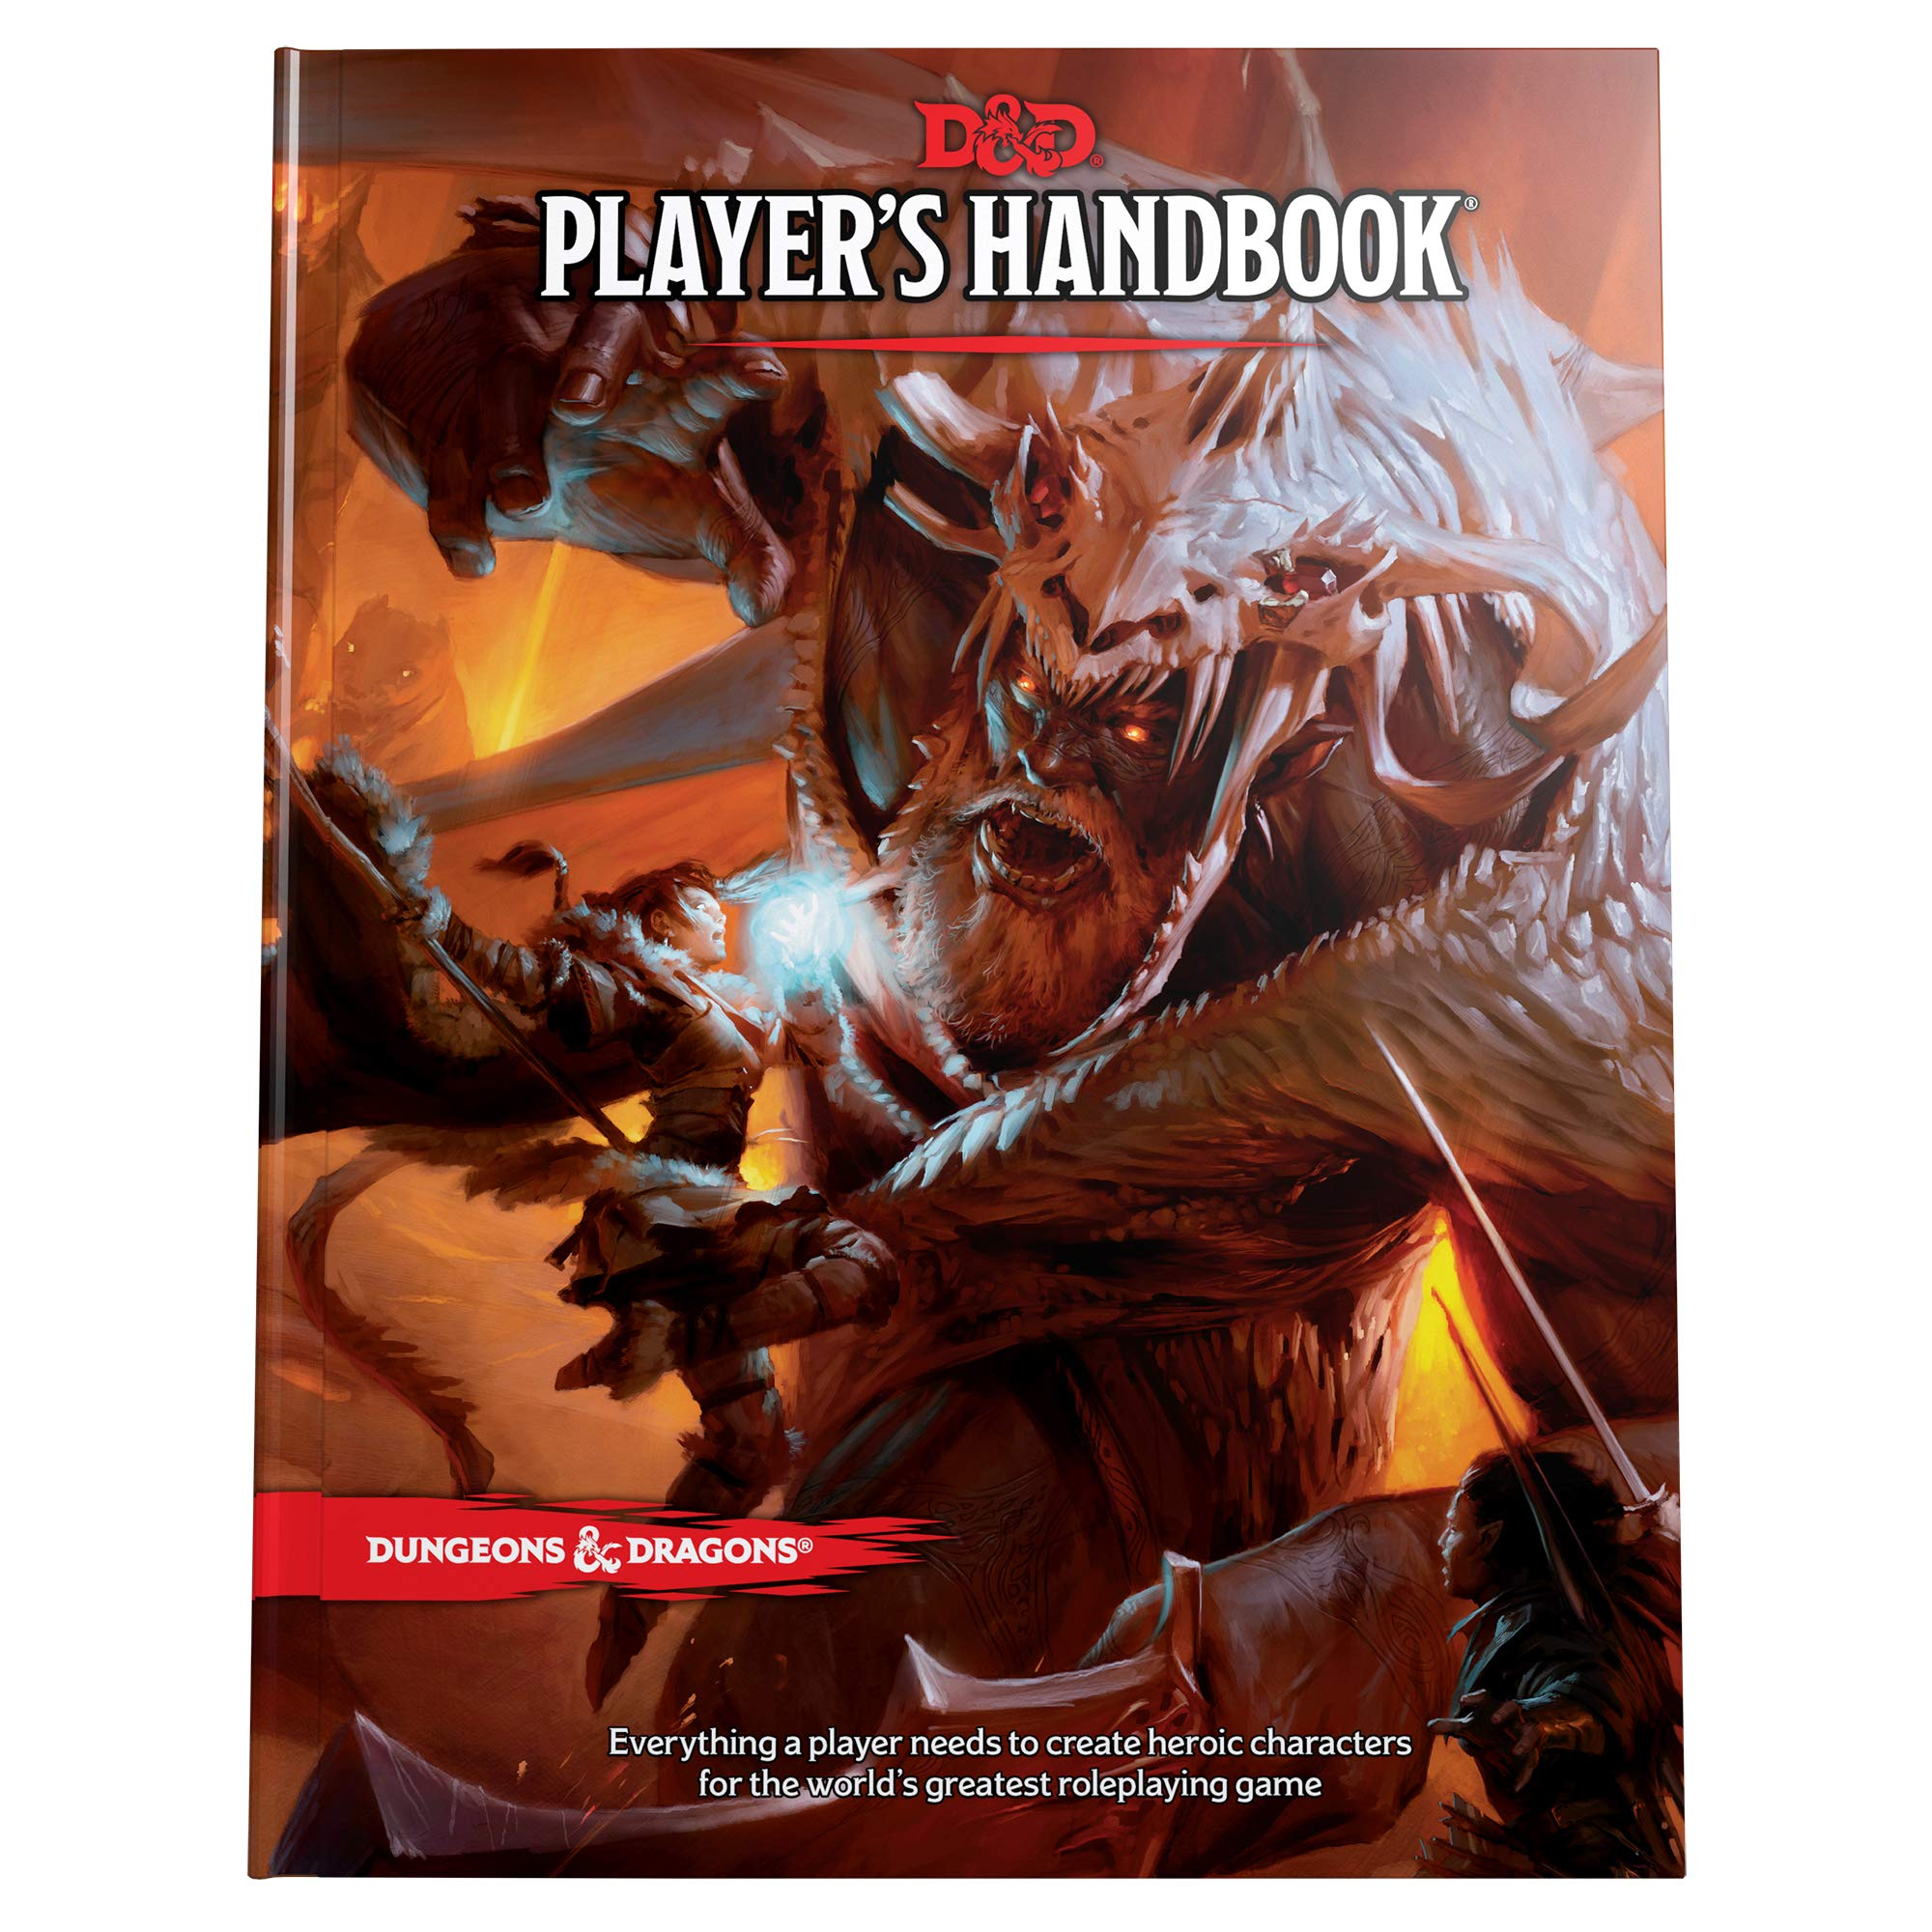 Player's Handbook (Fifth Edition) – Fifth Edition has kicked off a massive  Dungeons & Dragons